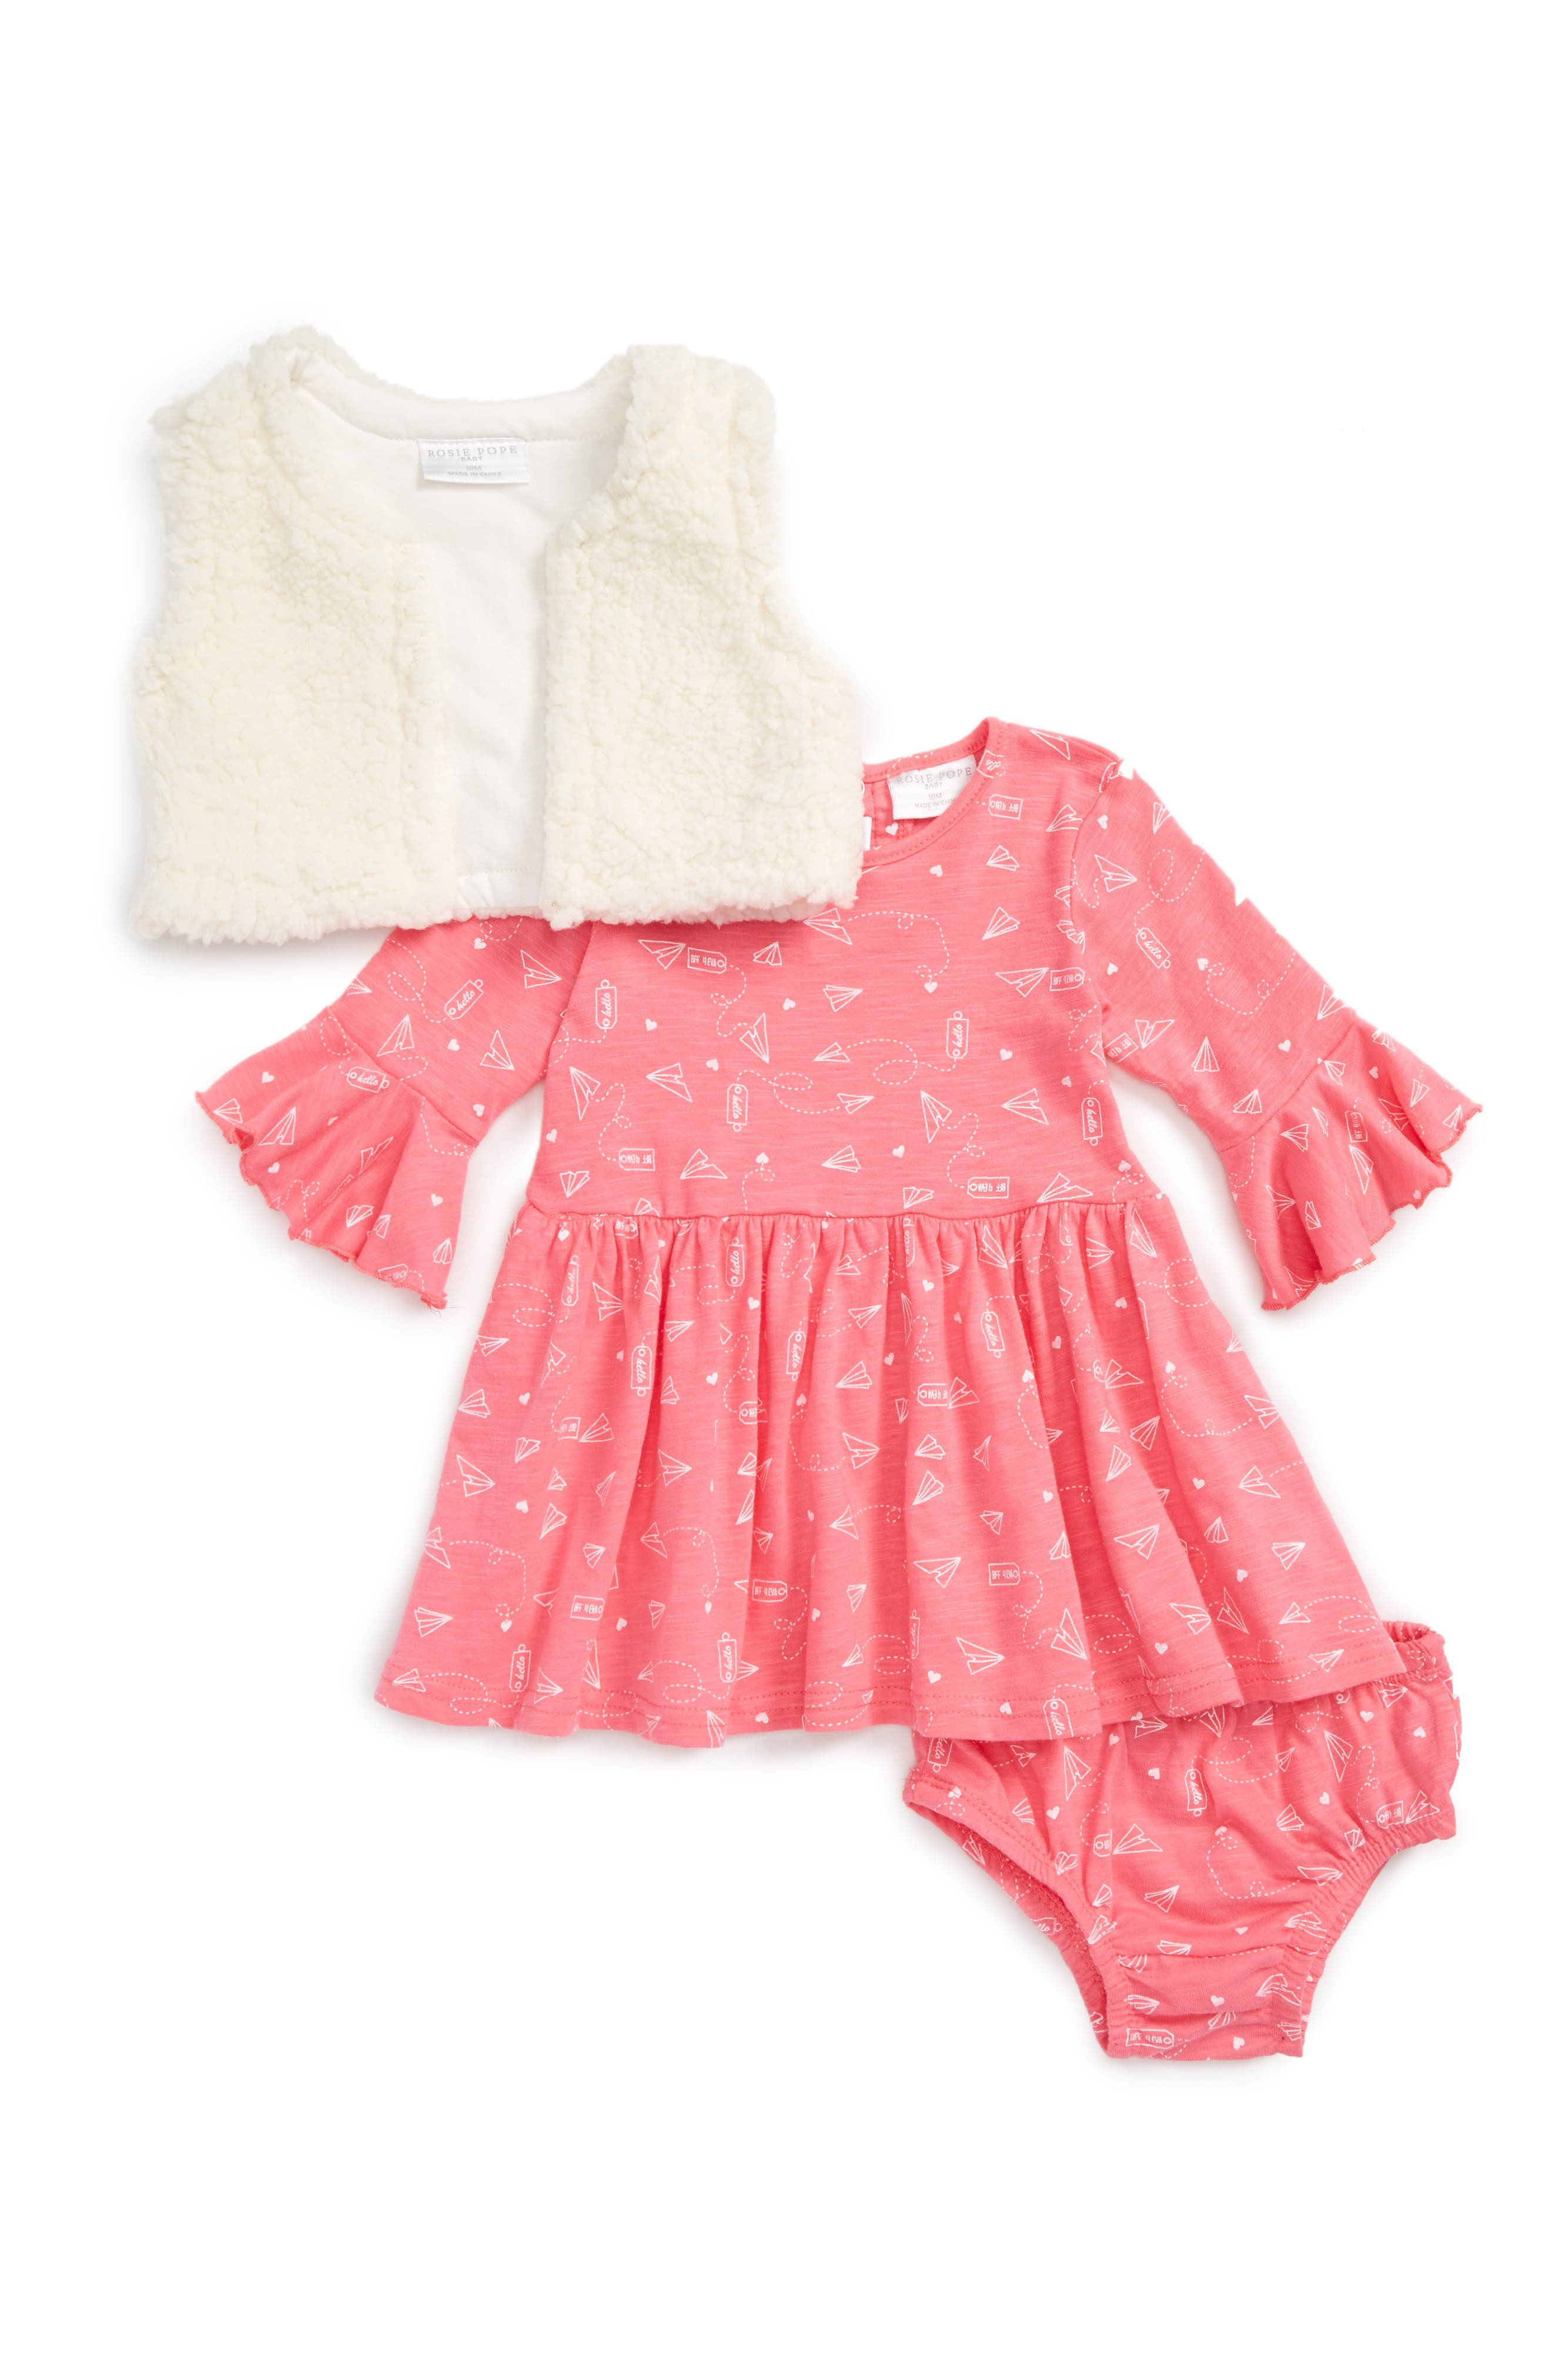 Main Image - Rosie Pope Airplane Notes Print Dress & Faux Fur Vest Set (Baby Girls)